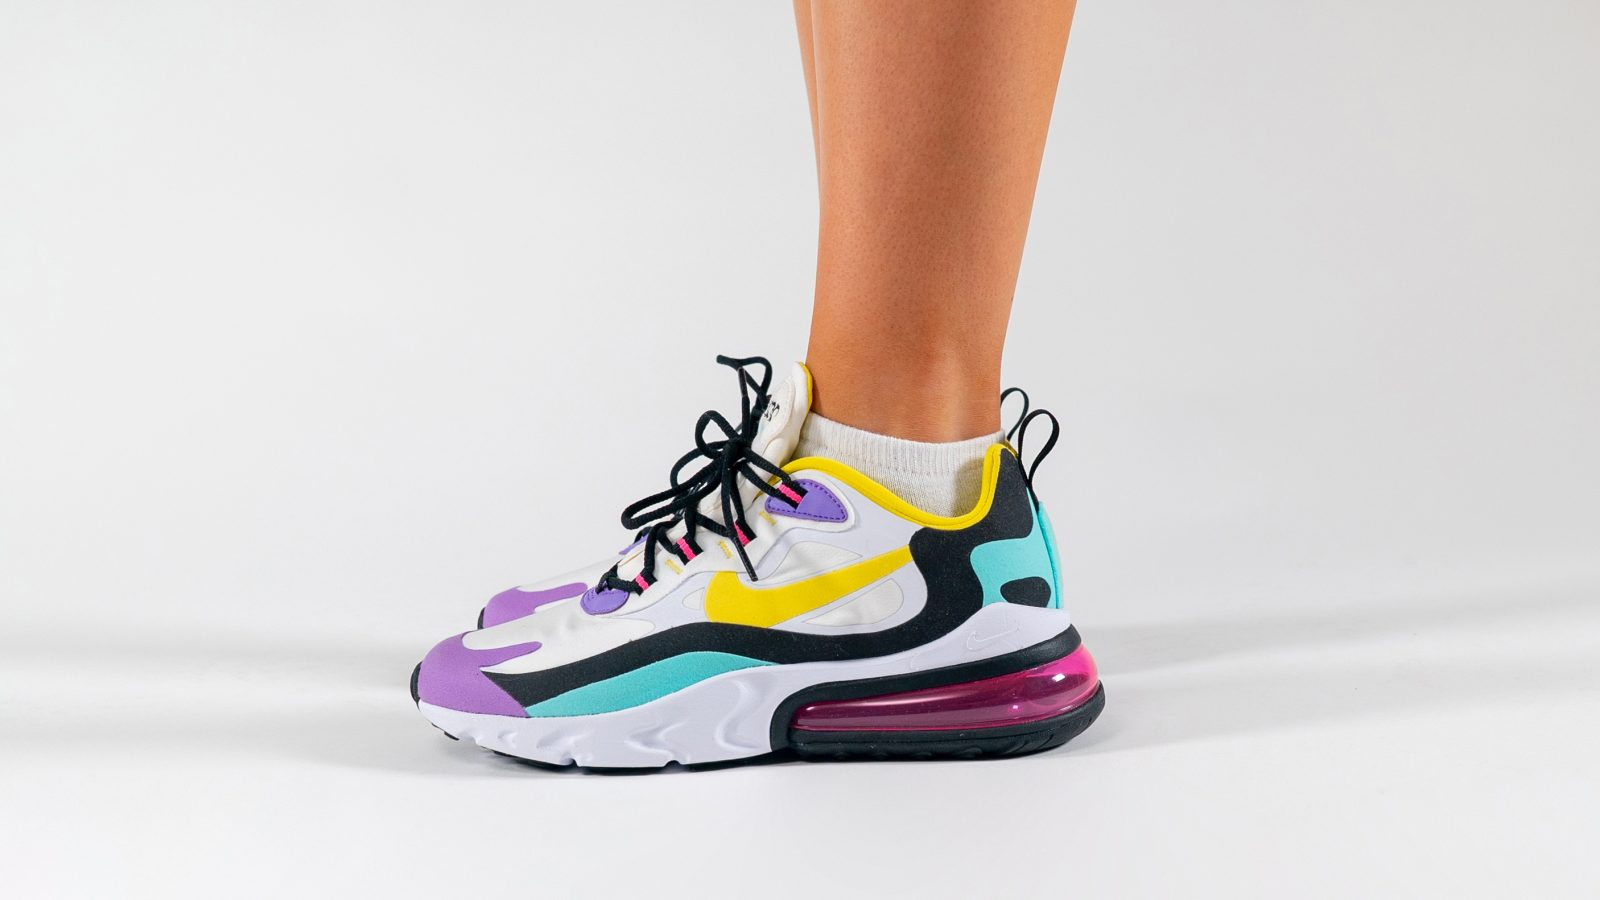 magasin d'usine 6cb39 4cdcb An Exclusive Look At The Nike Air Max 270 React